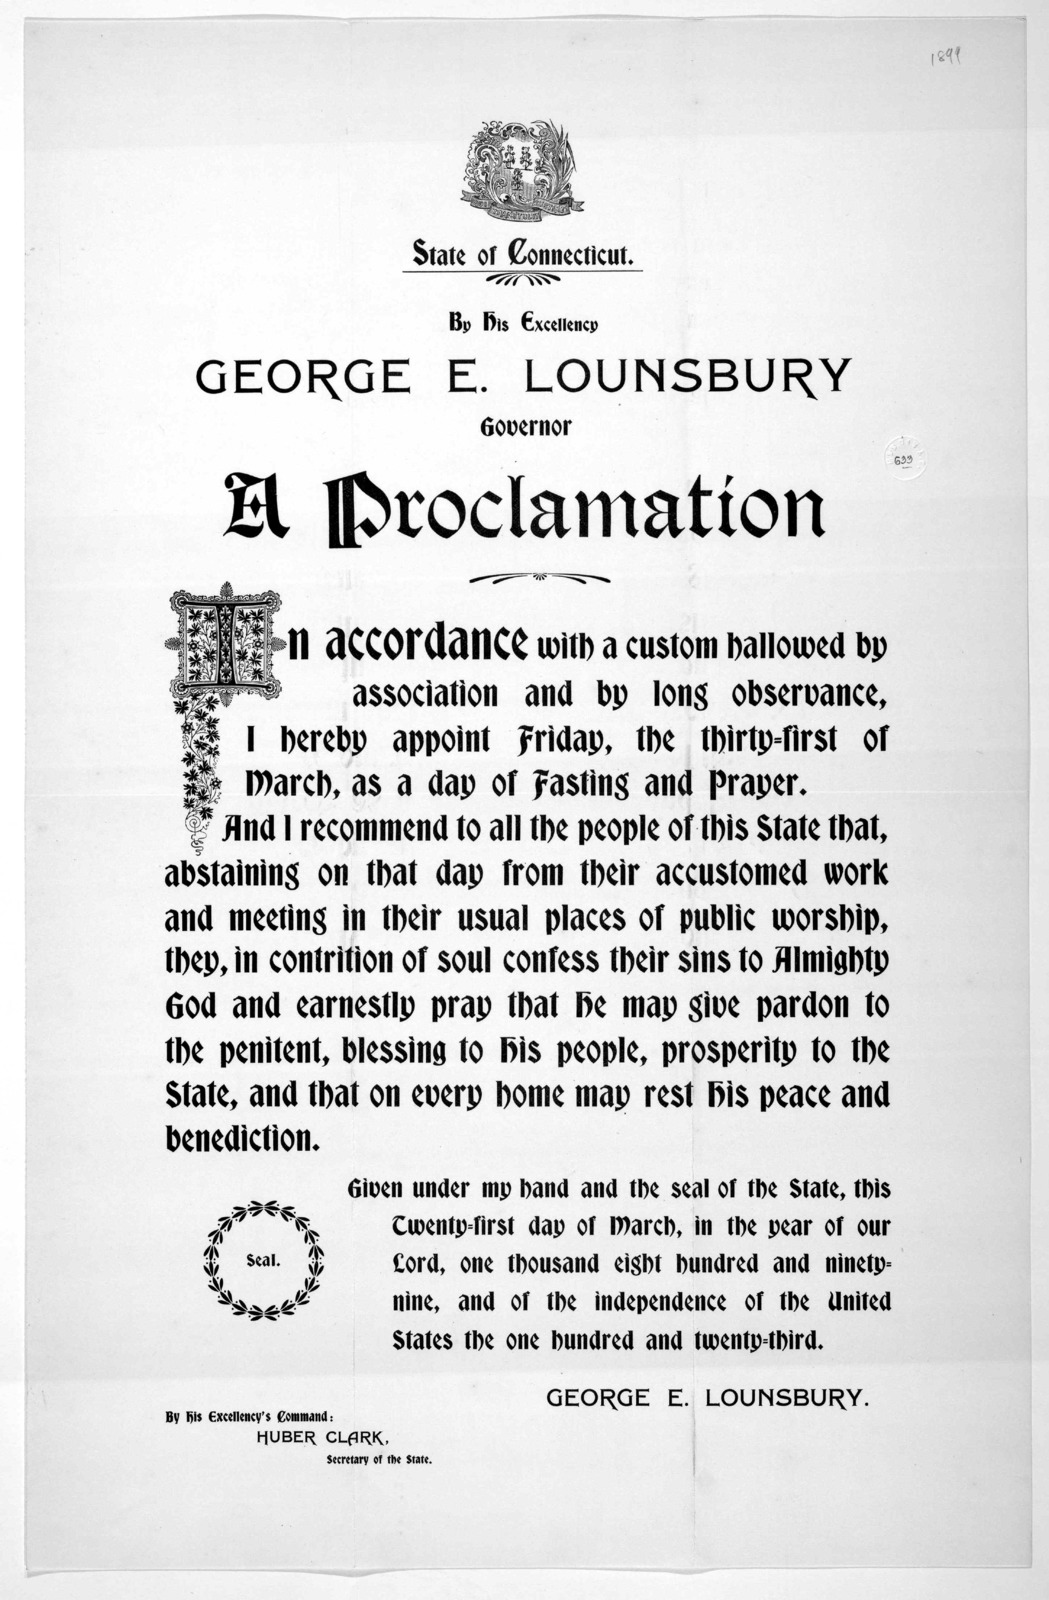 [Arms] State of Connecticut. By His Excellency George E. Lounsbury Governor. A proclamation ... I hereby appoint Friday, the thirty-first of March, as a day of fasting and prayer ... Given under my hand ... this twenty-first day of March, in the